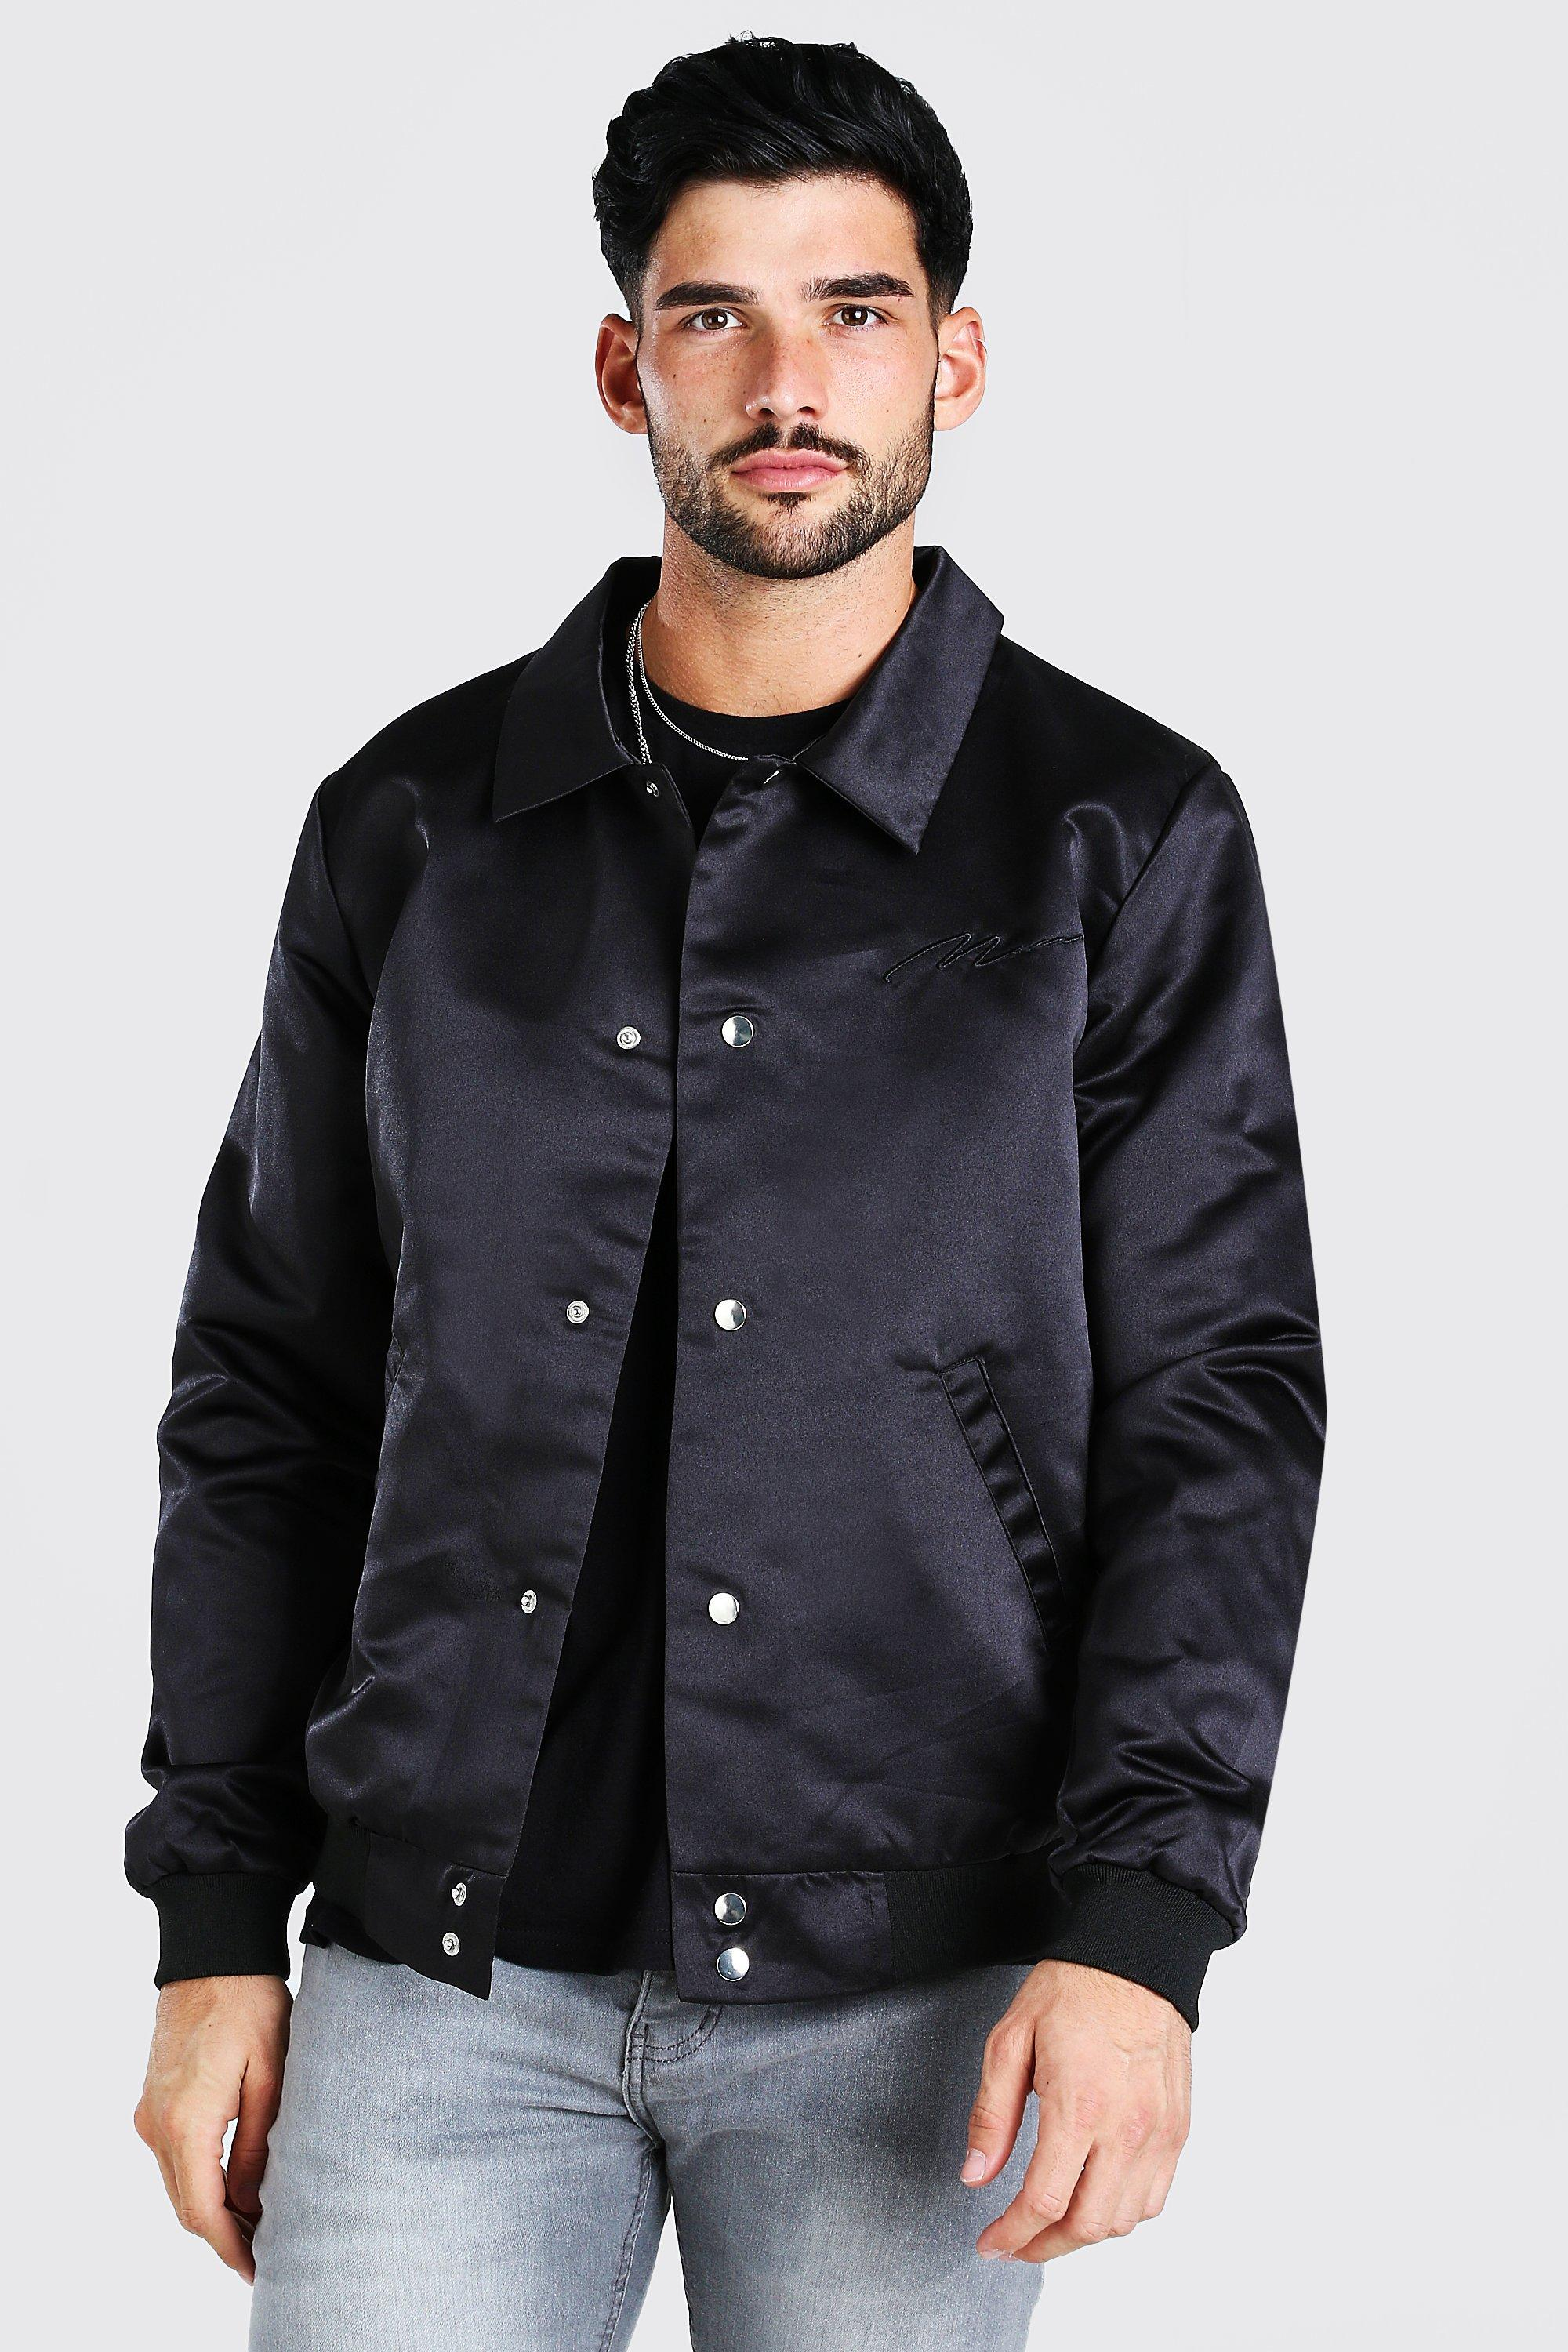 mens satin coach jacket with chest man embroidery - black